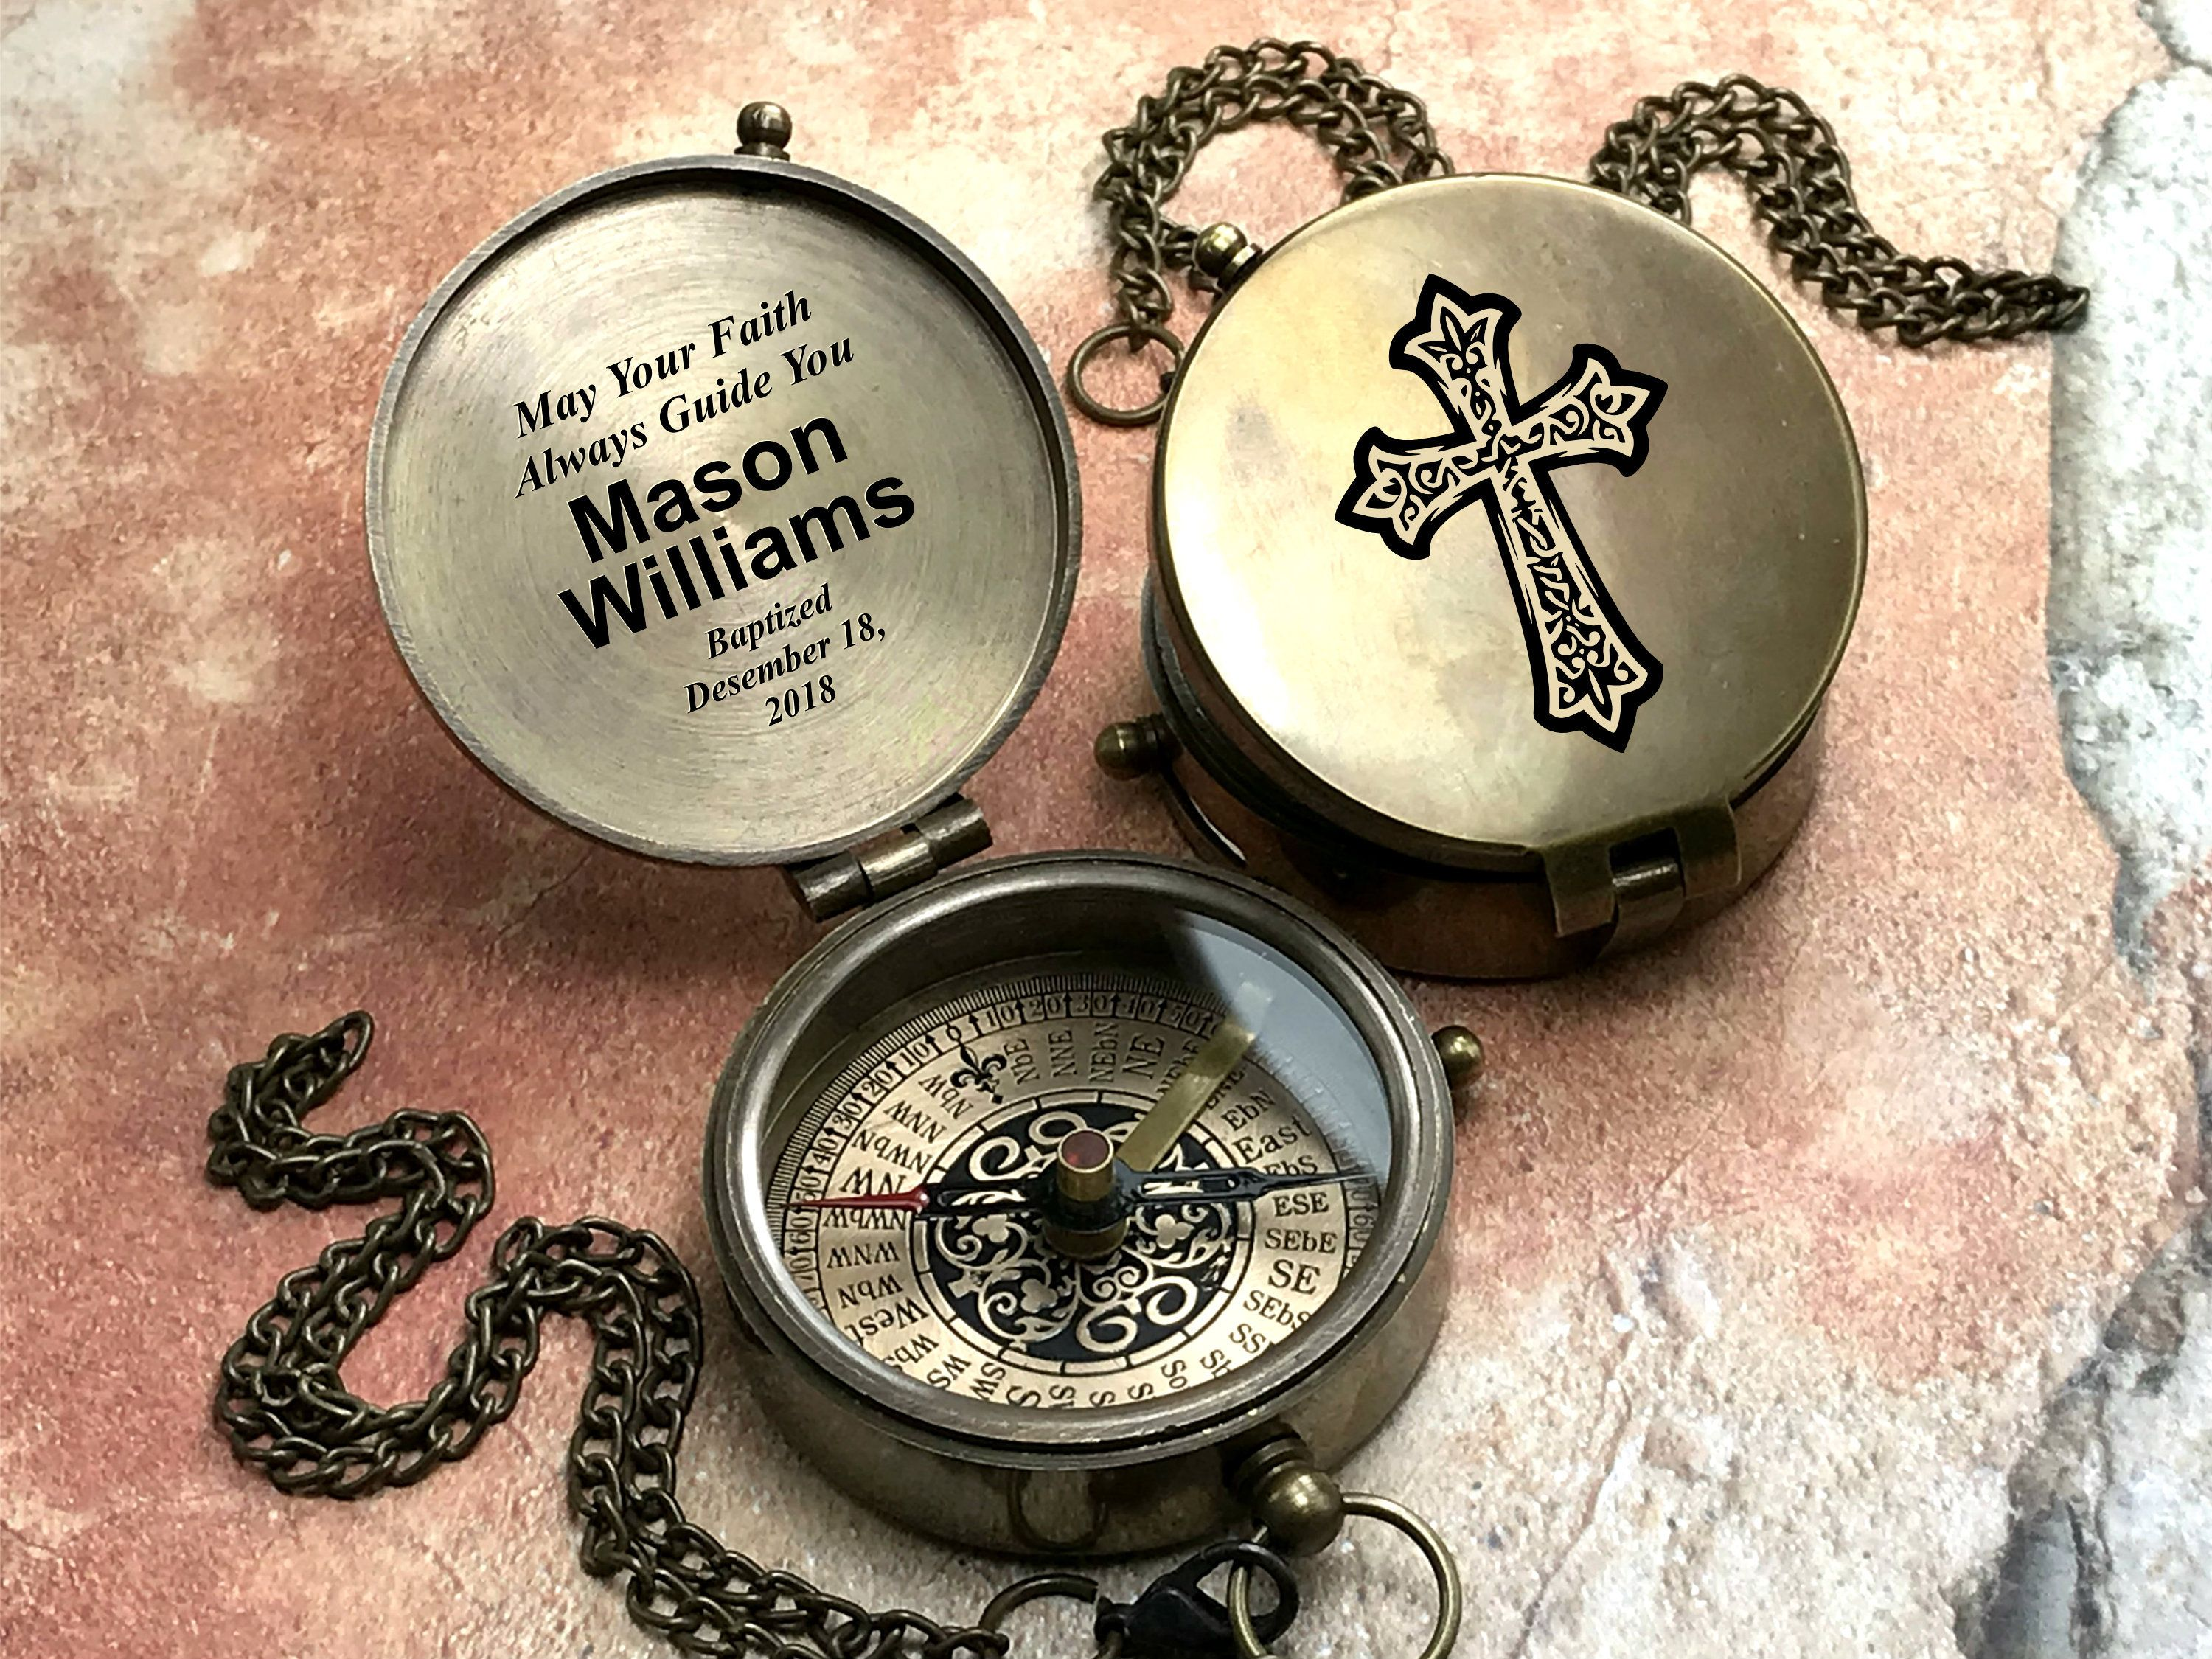 Compass baptism gift confirmation gift first communion